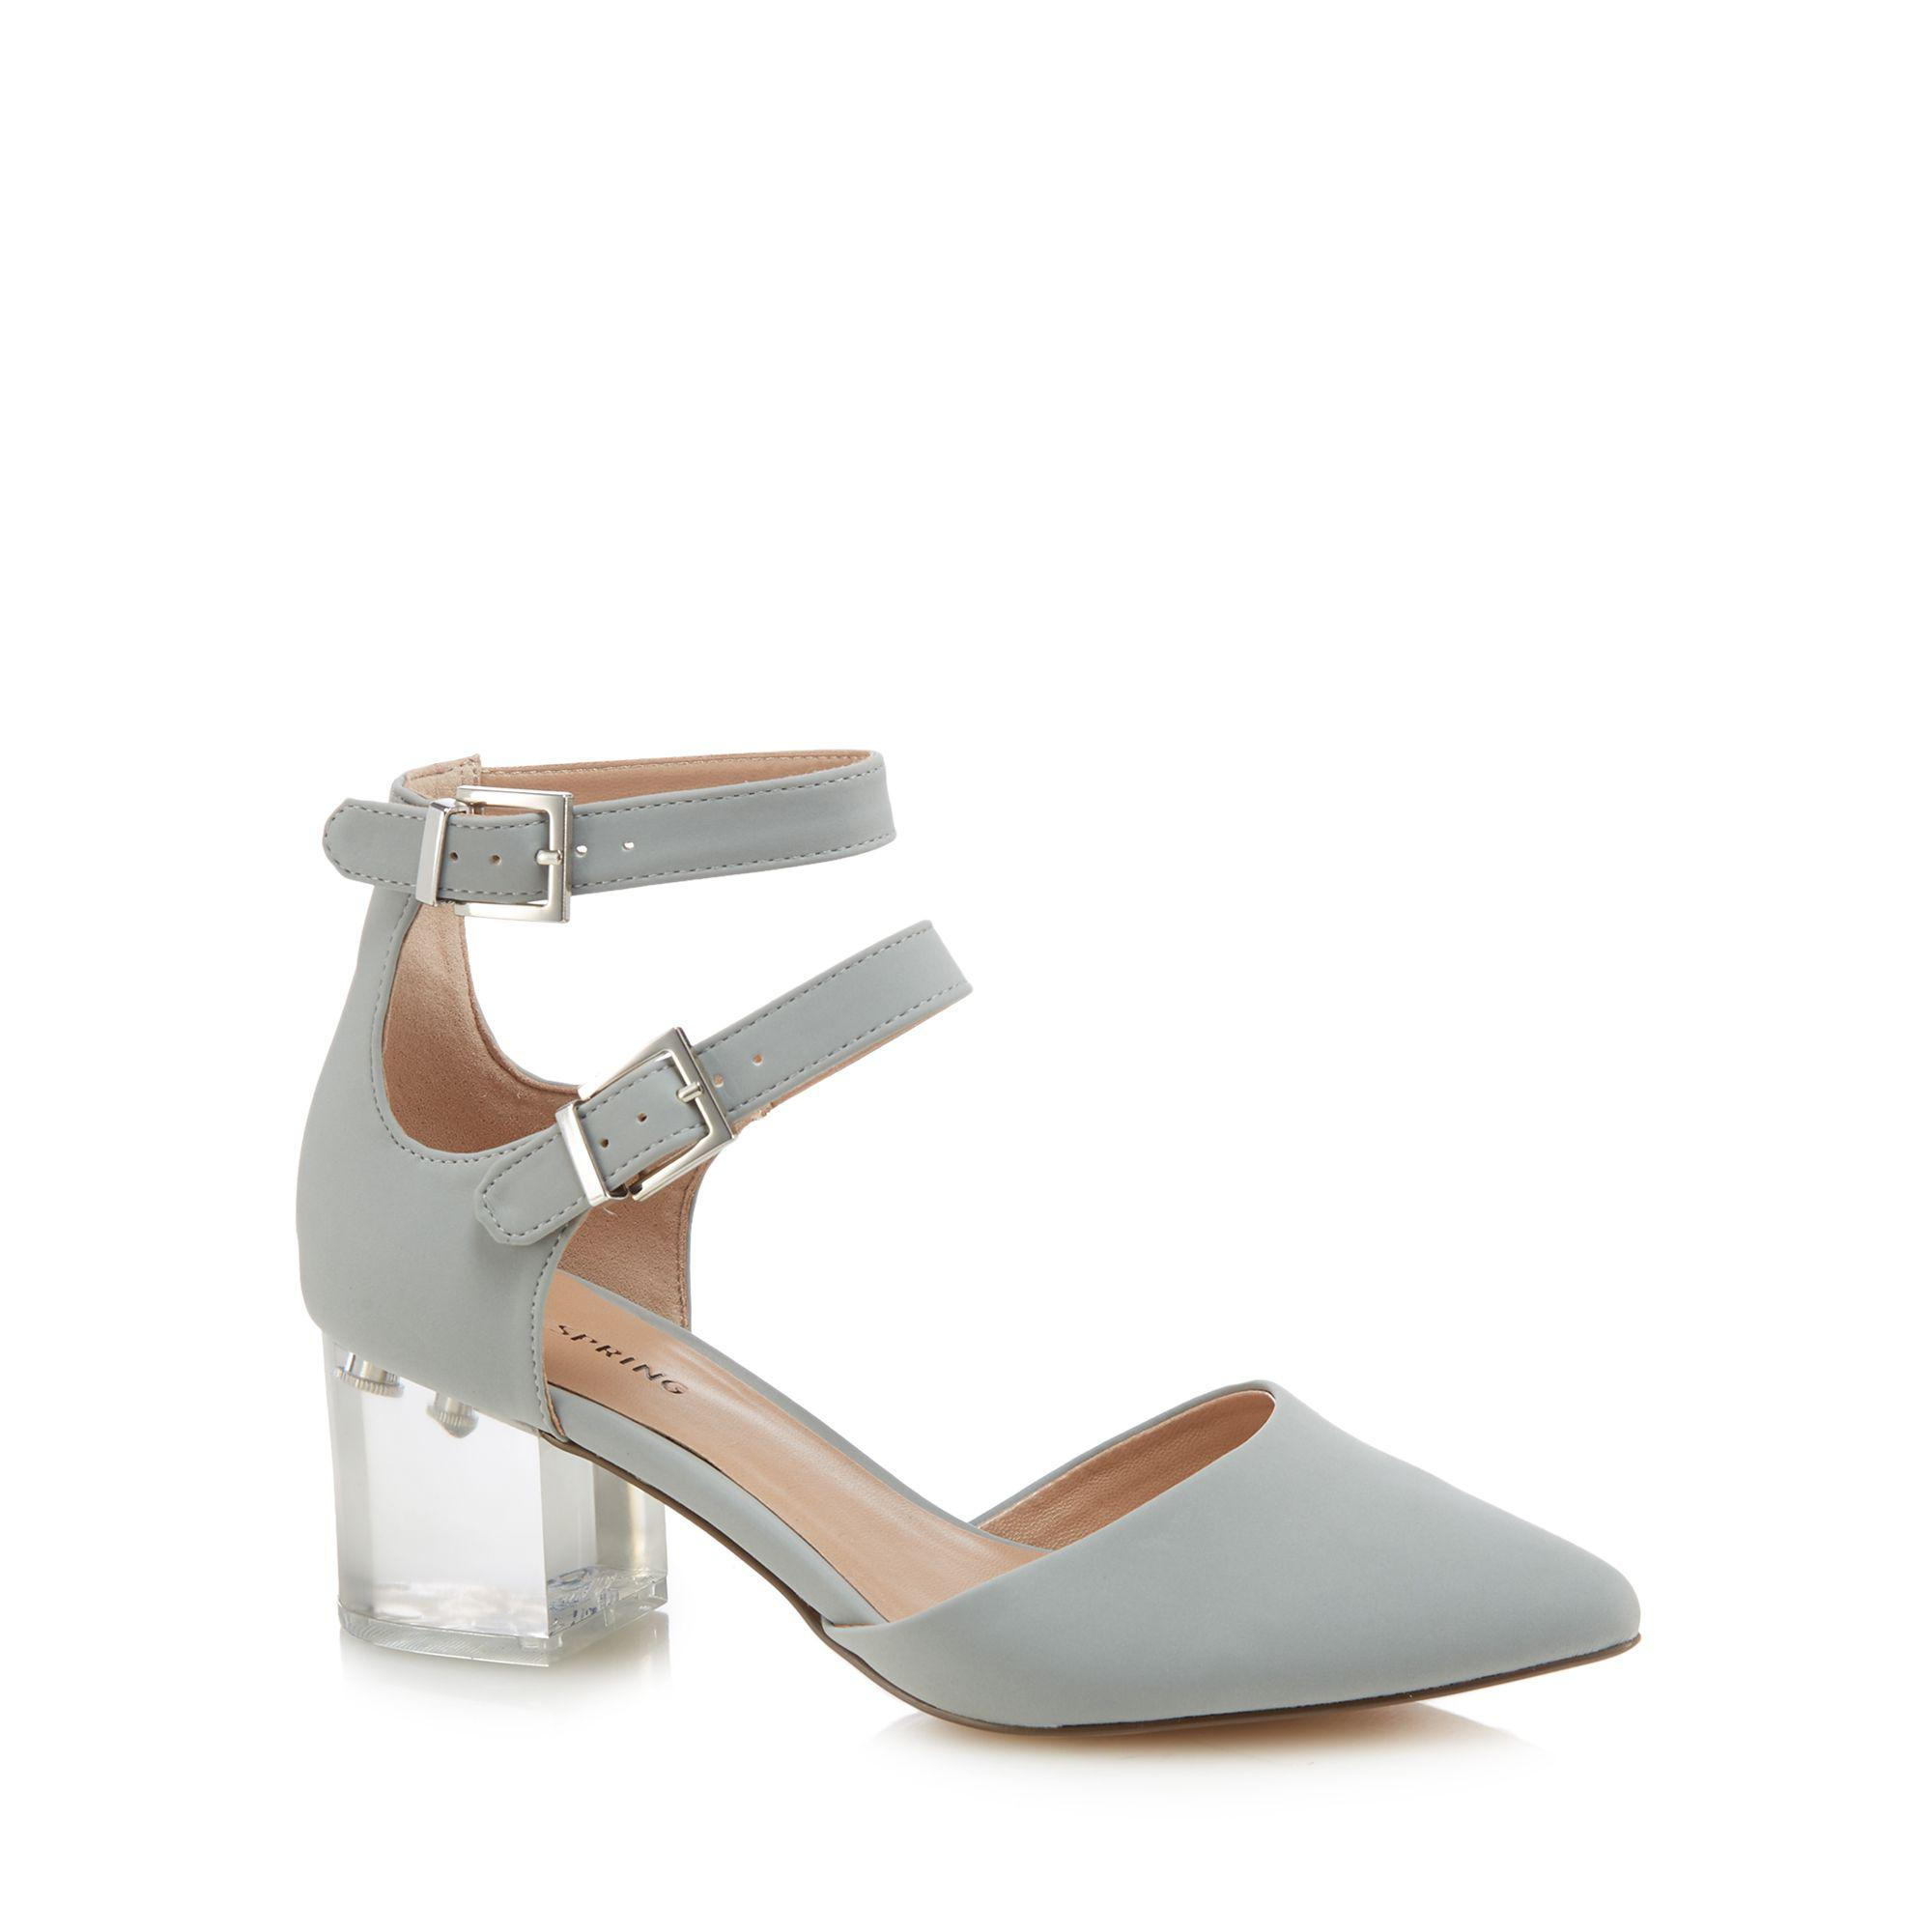 outlet shopping online sale 2014 new Pale blue 'Larerawiel' mid block heel pointed shoes free shipping best seller nTEUw